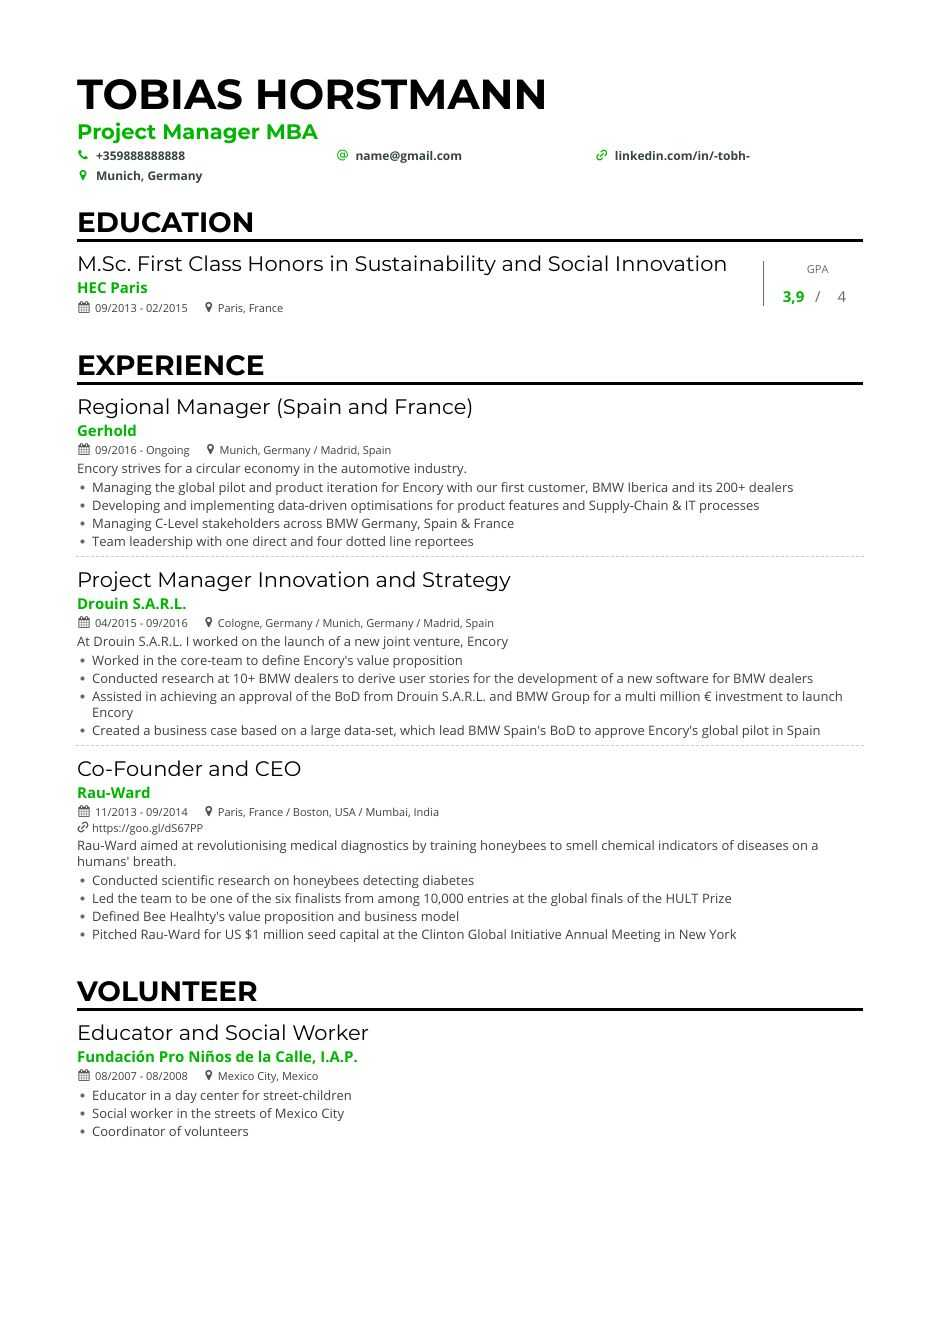 project manager resume examples guide expert tips for generated resumes json non cdl Resume Project Manager Resume Examples